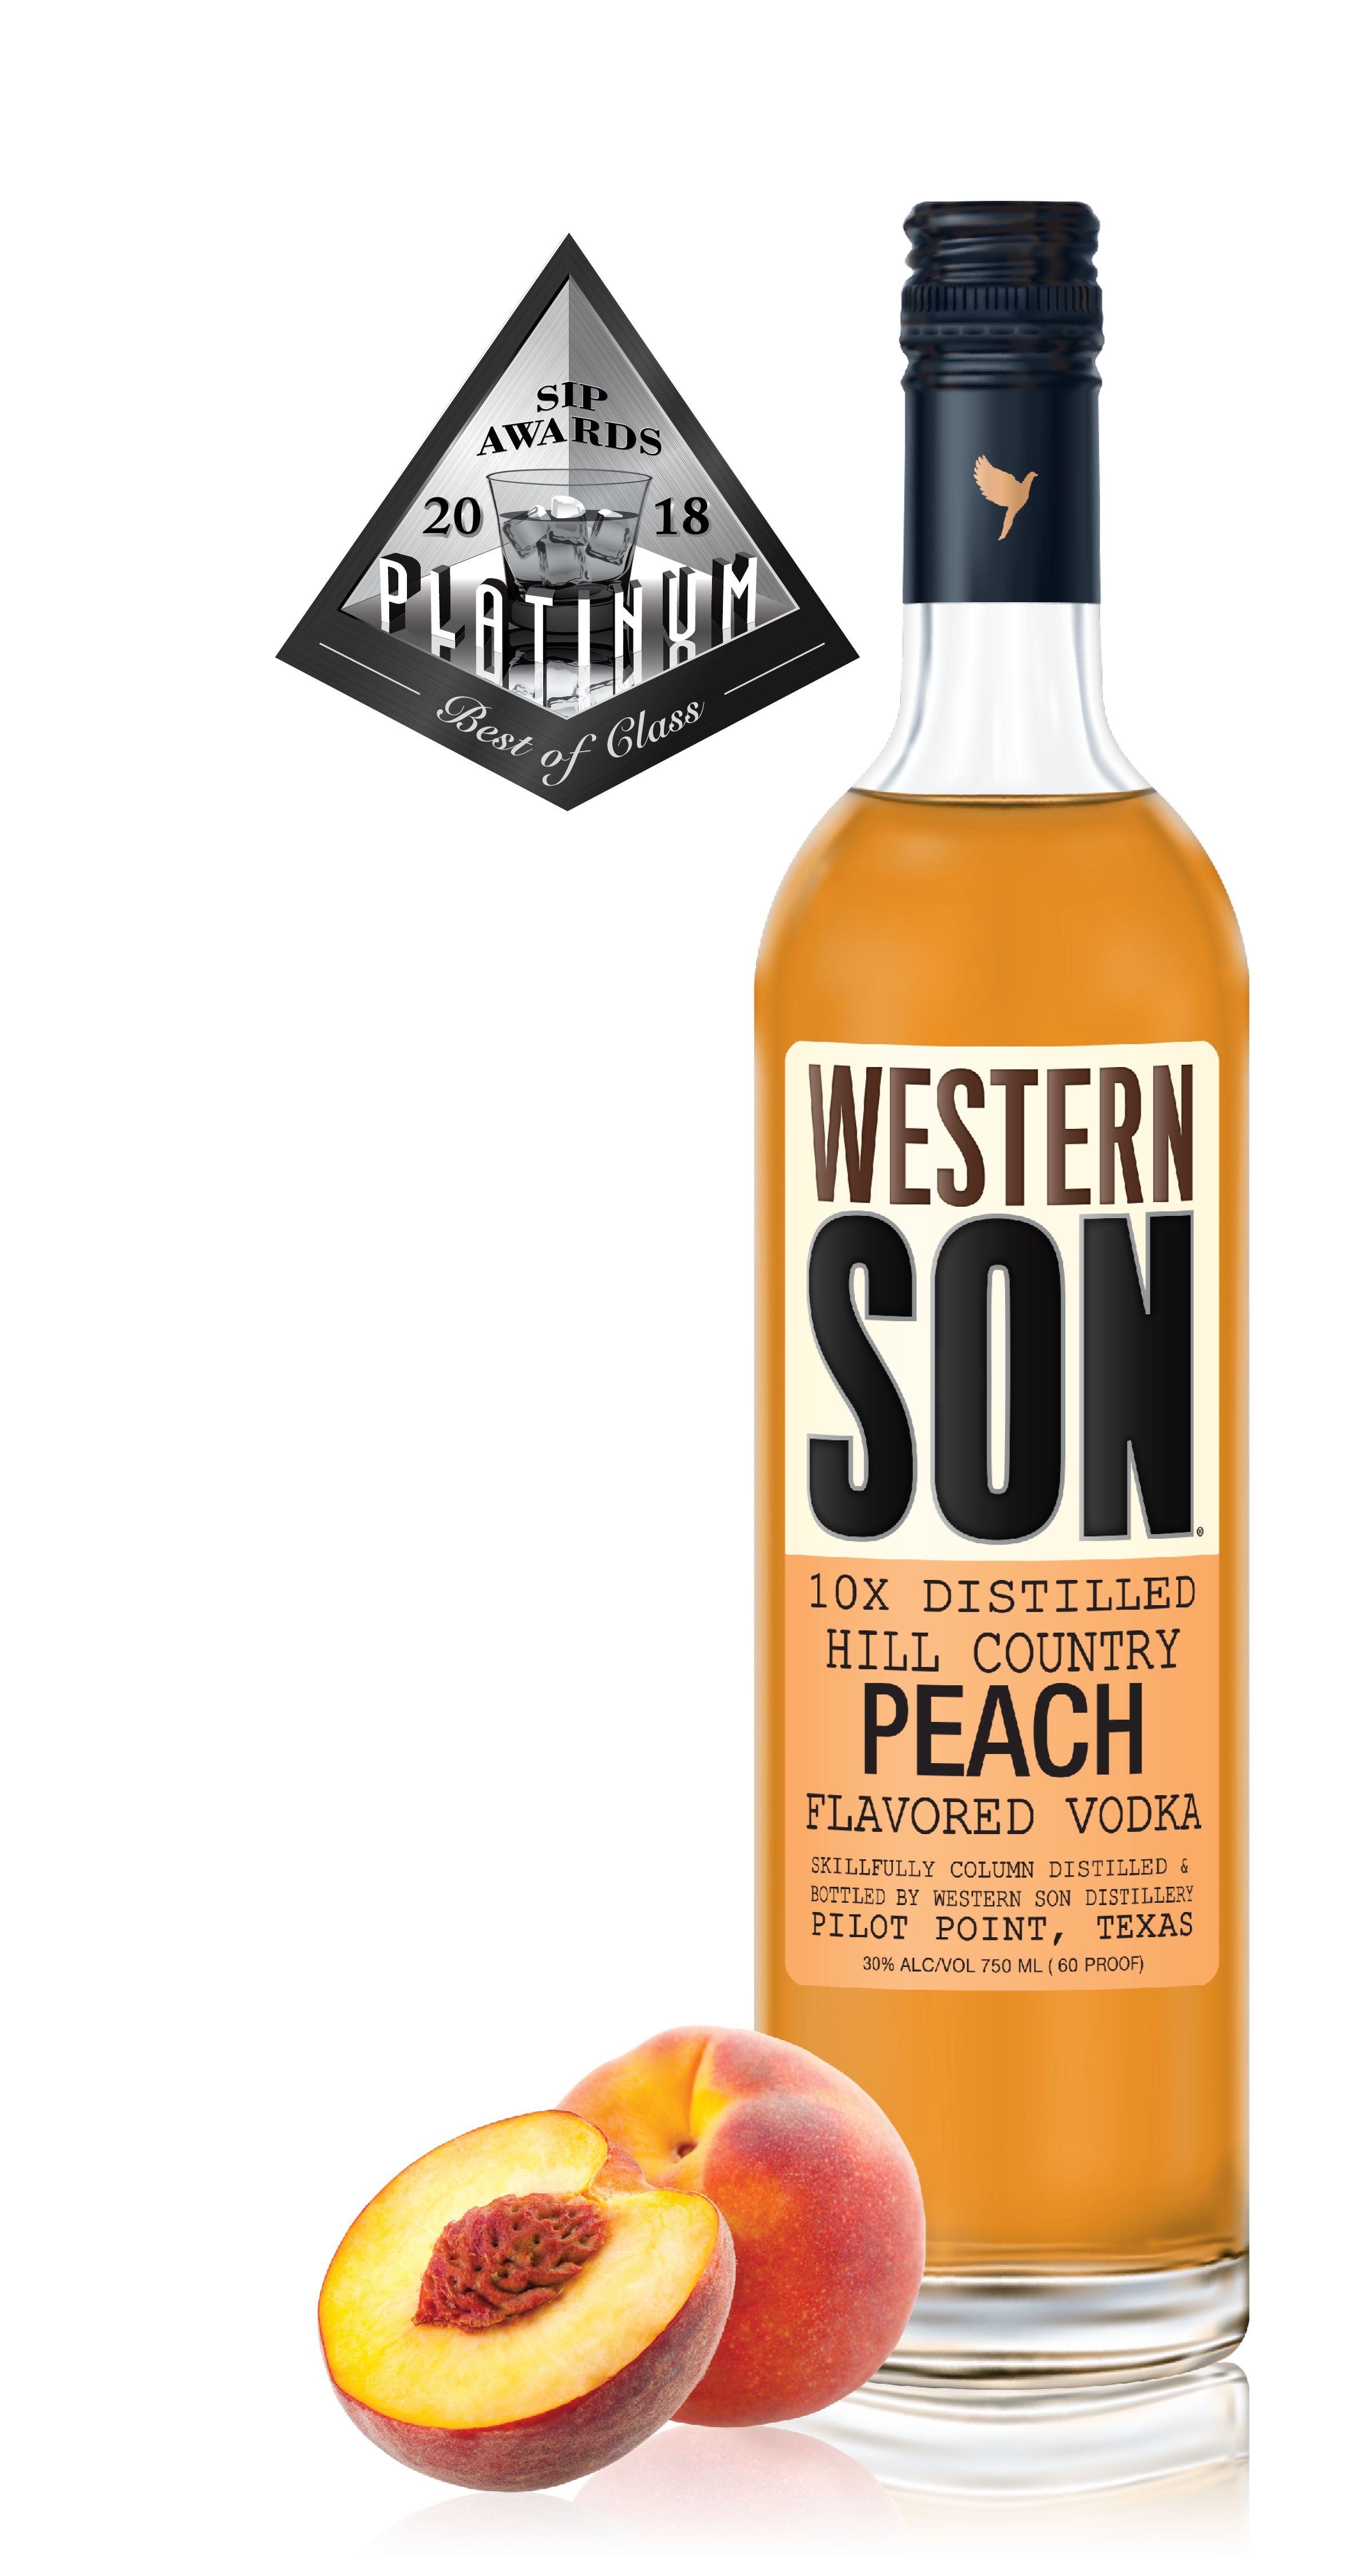 PEACH - Enjoy sweet peach maramalade and honey aromas as they tantalize the tongue like a peach sorbet with enough body and sweetness for a silky finish.Click for recipes